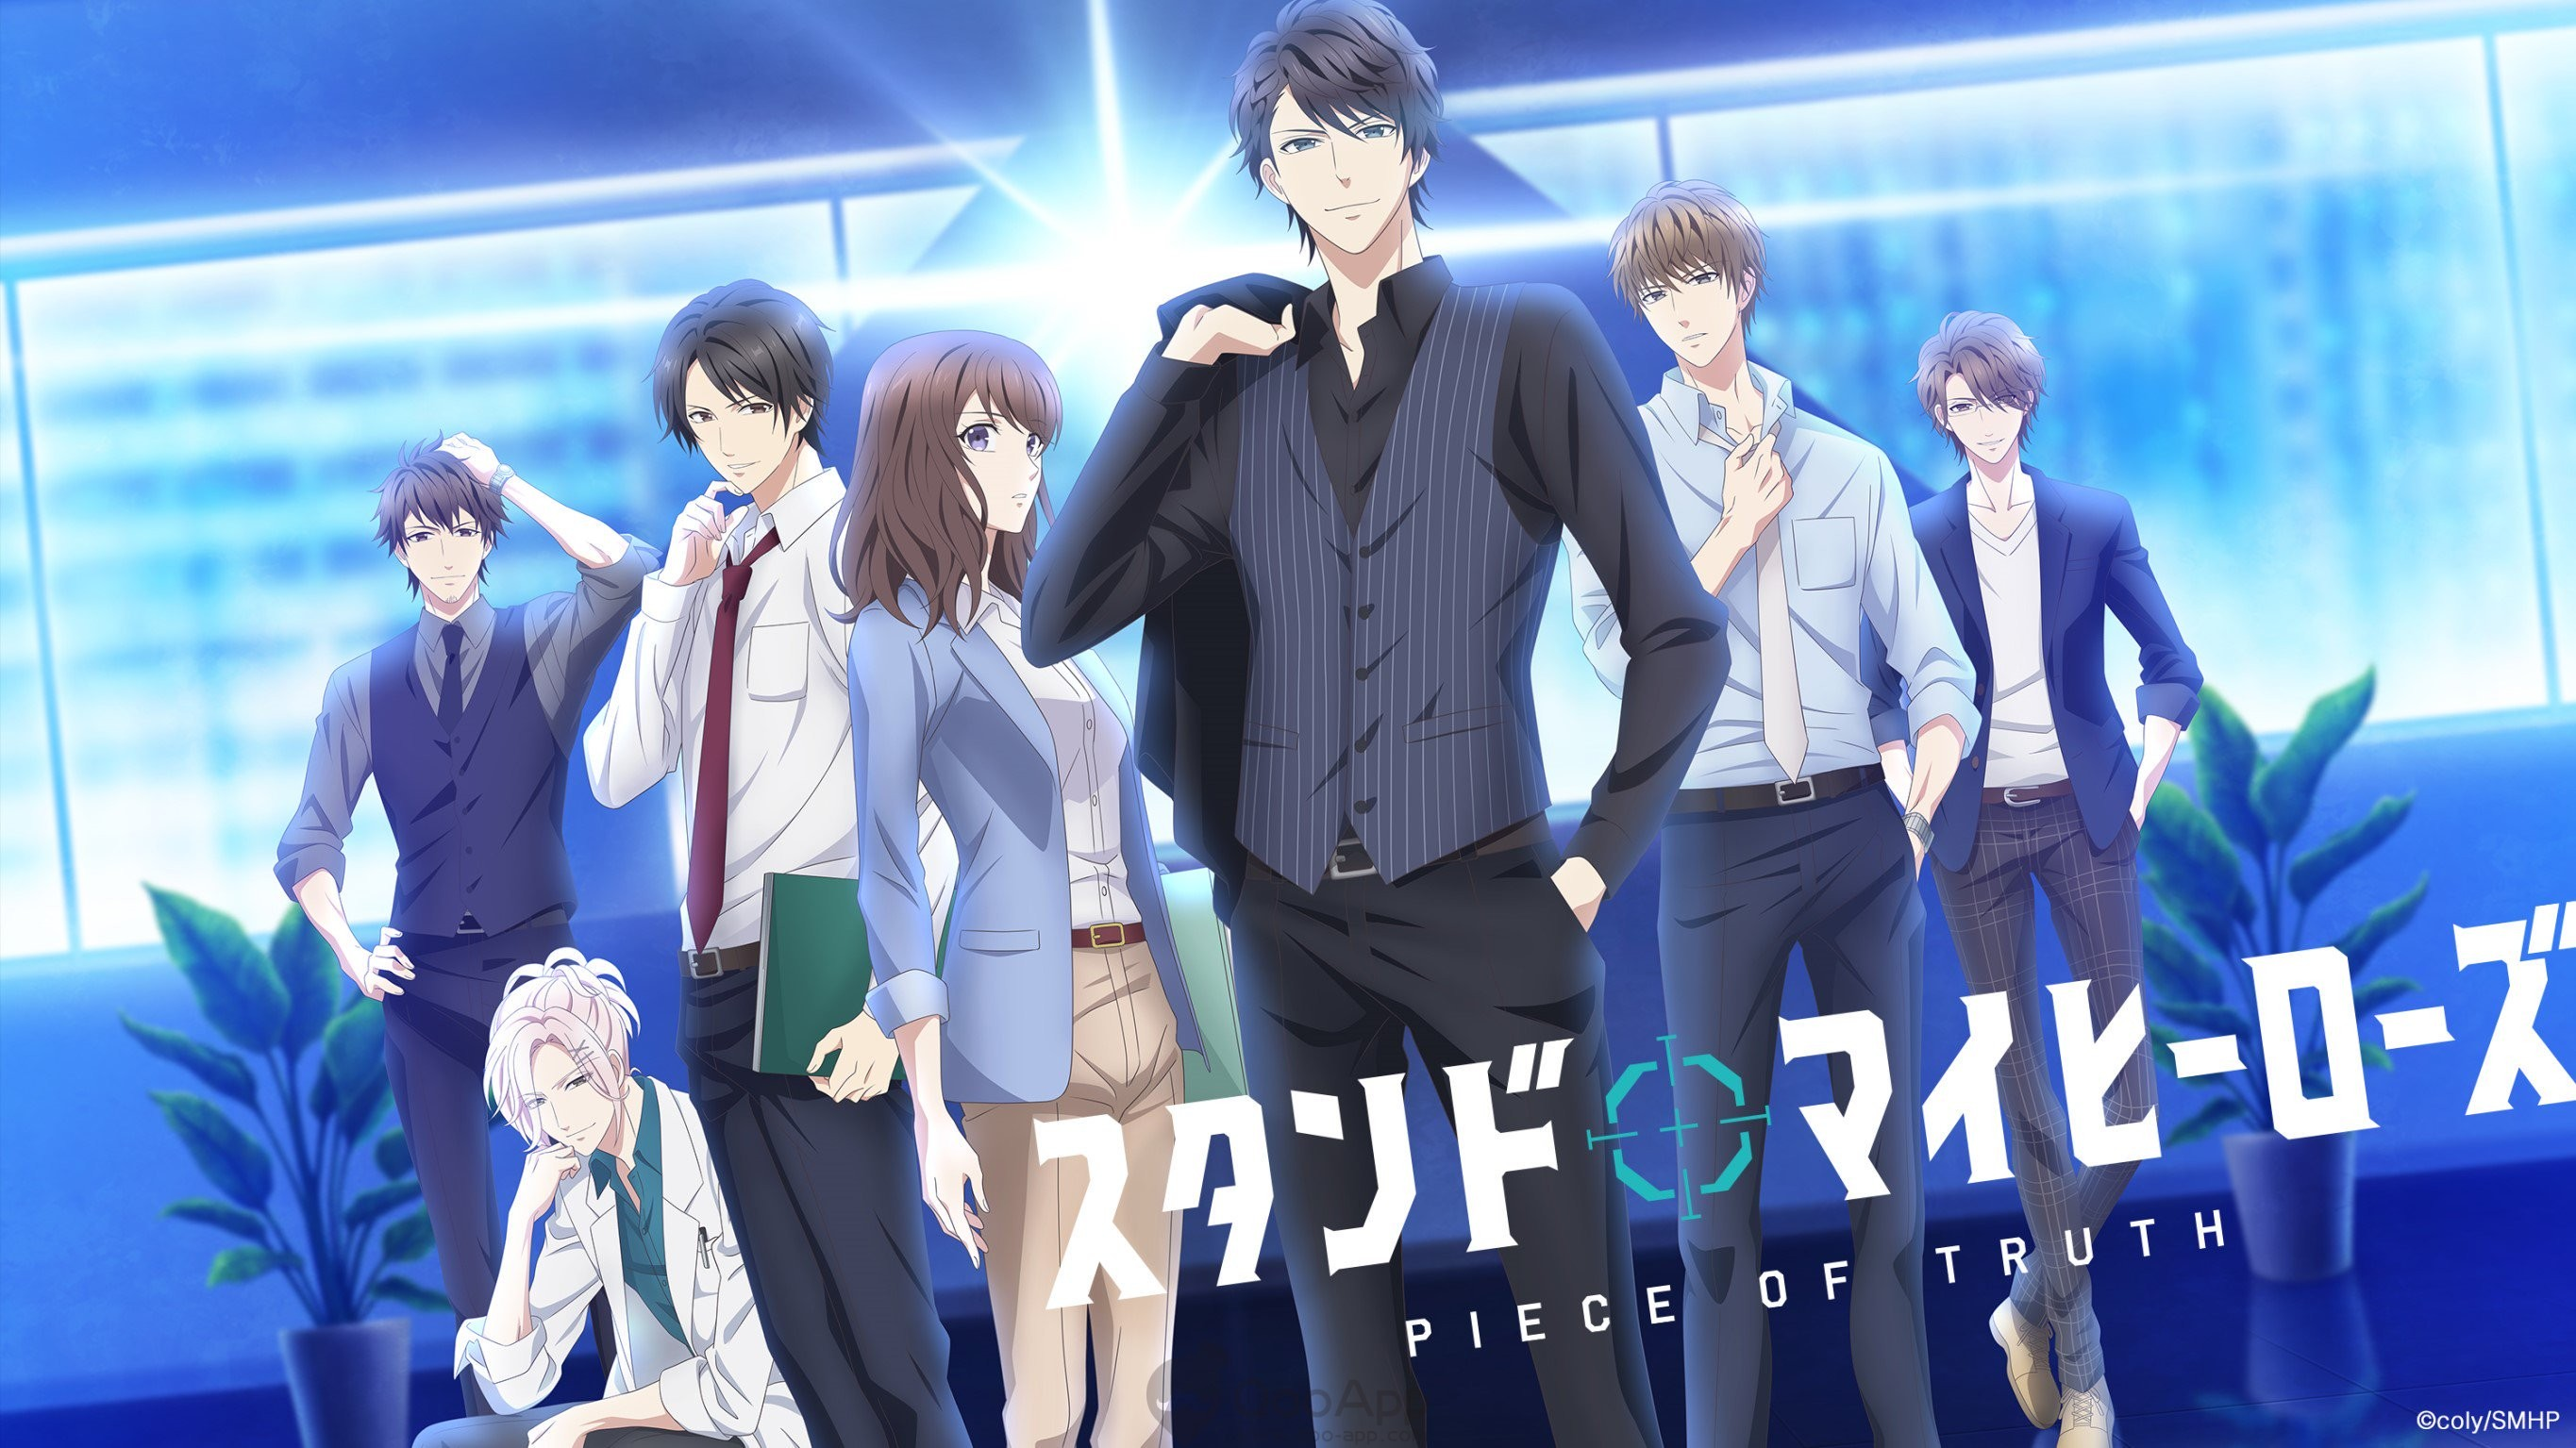 Otome Game-based TV Anime Stand My Heroes PIECE OF TRUTH Reveals 1st PV